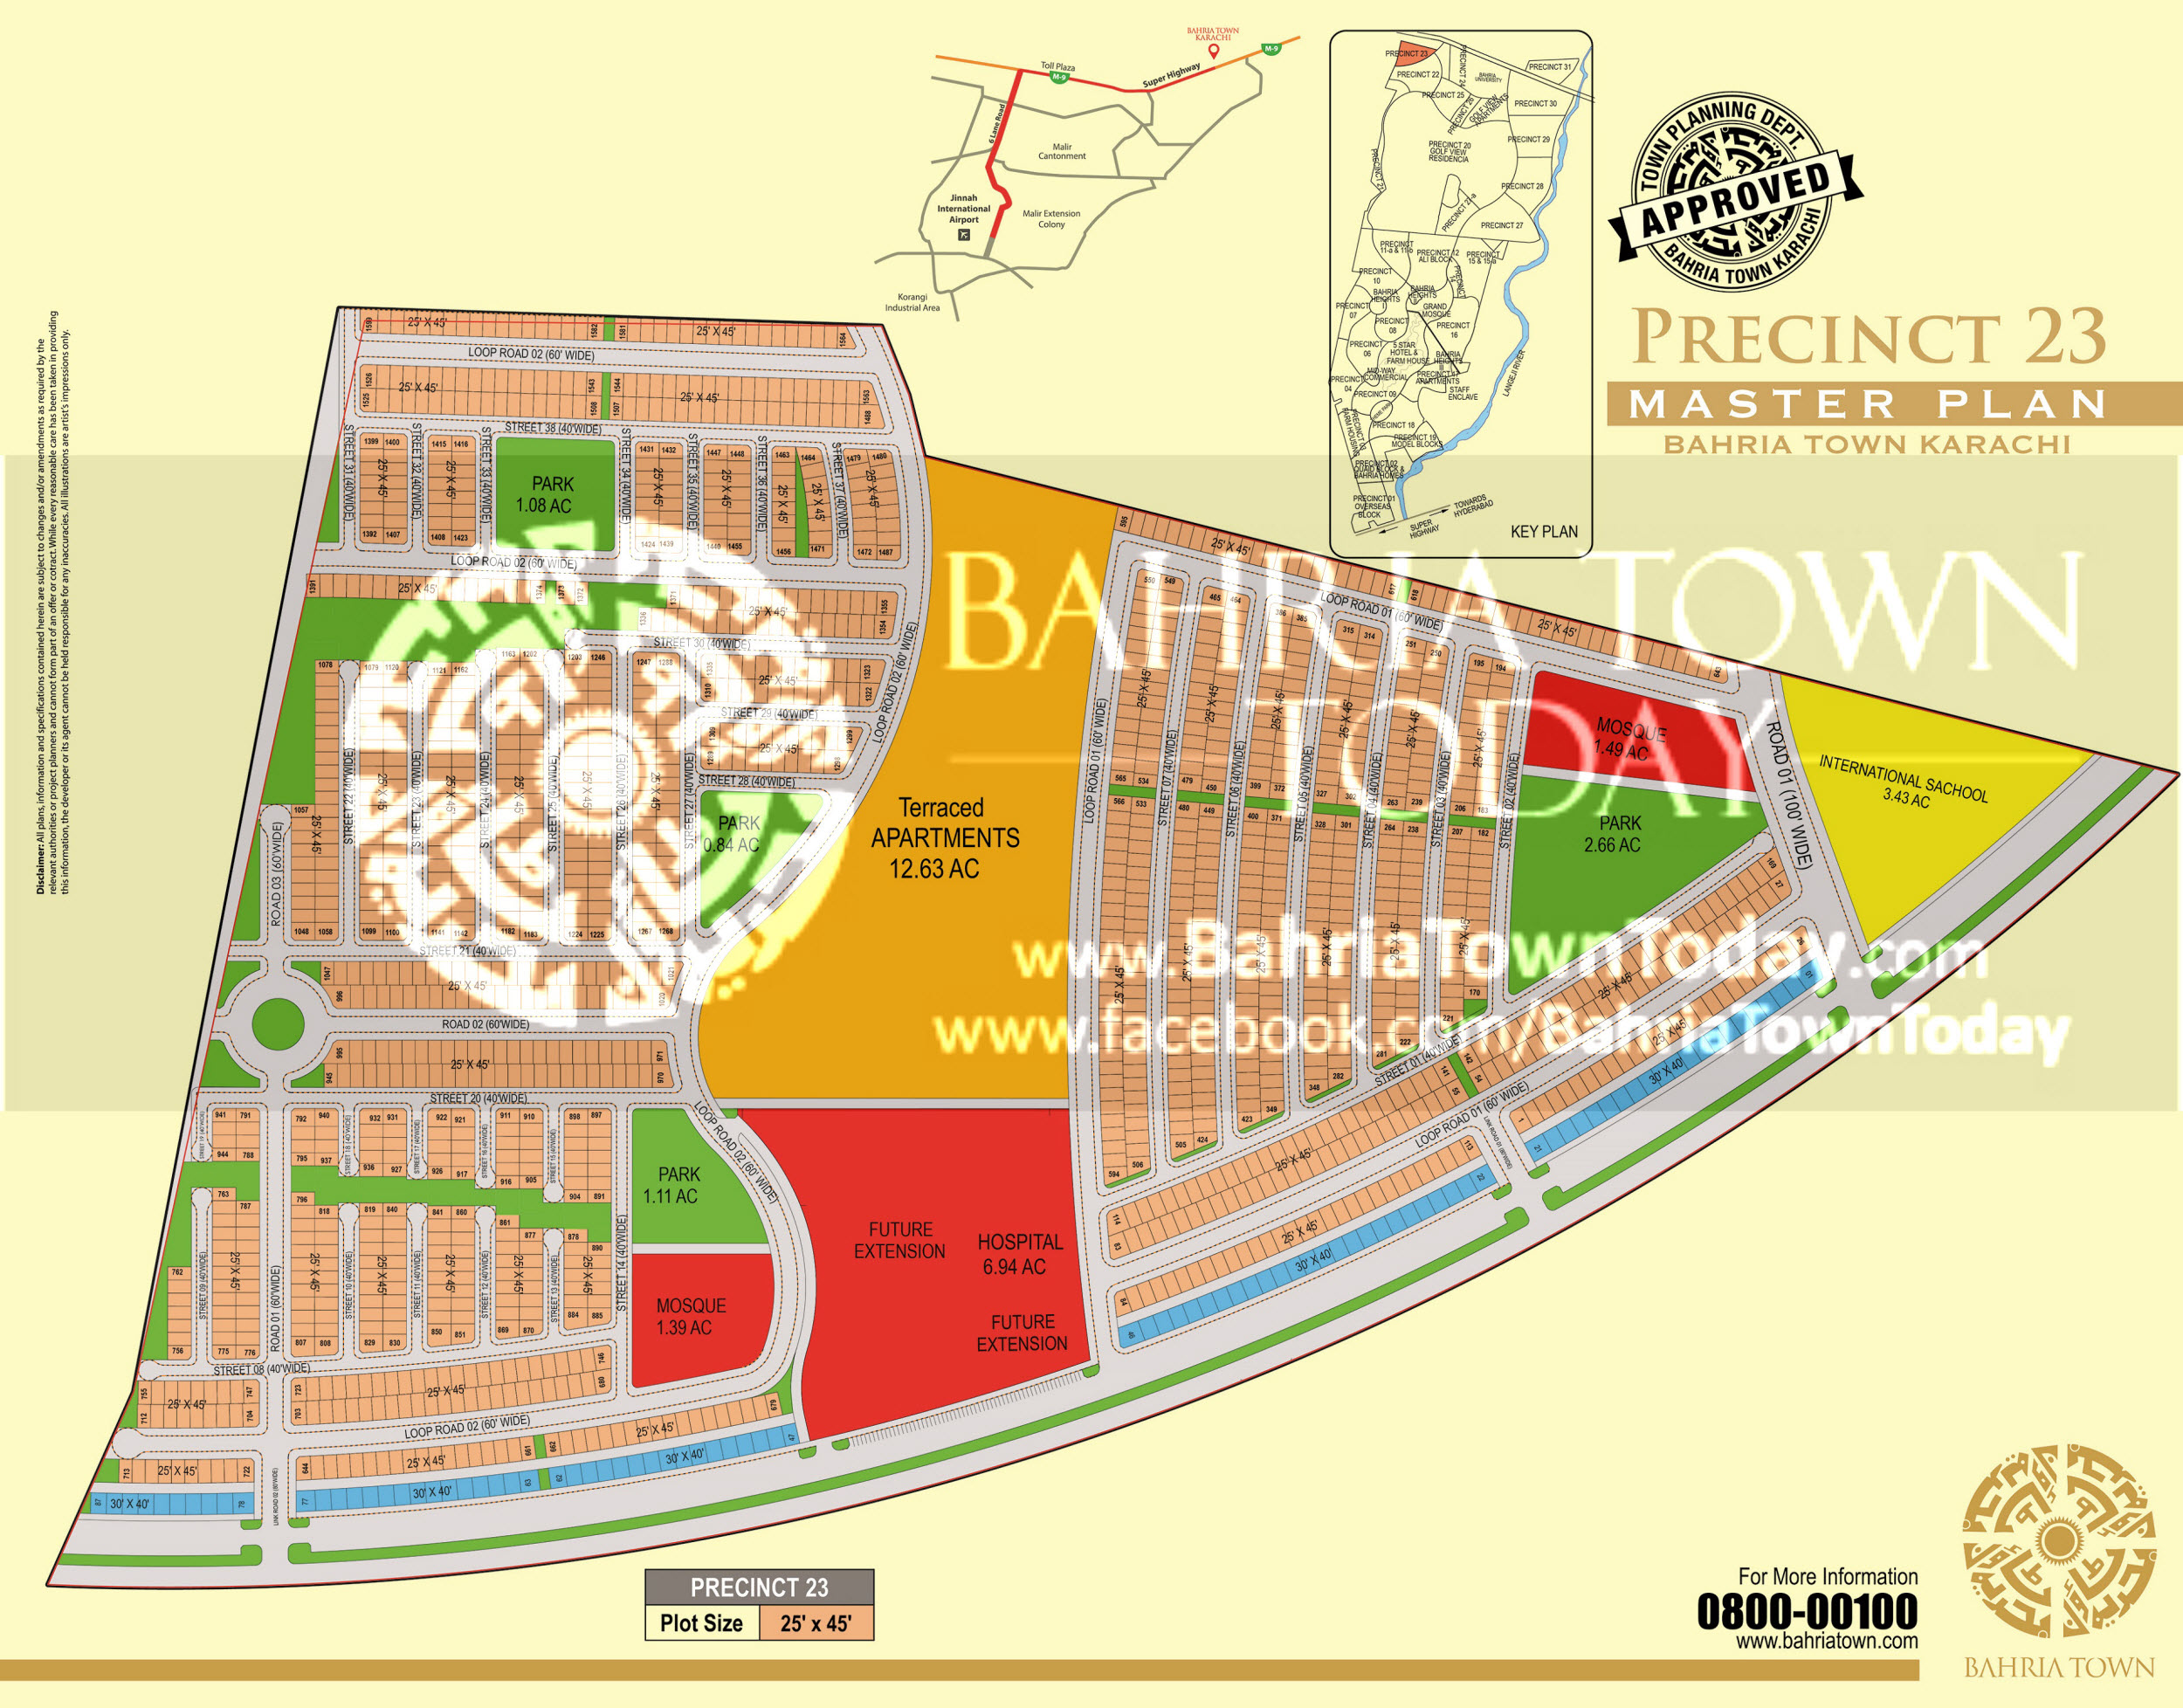 Bahria Town Karachi – Precinct 23 High Resolution Map